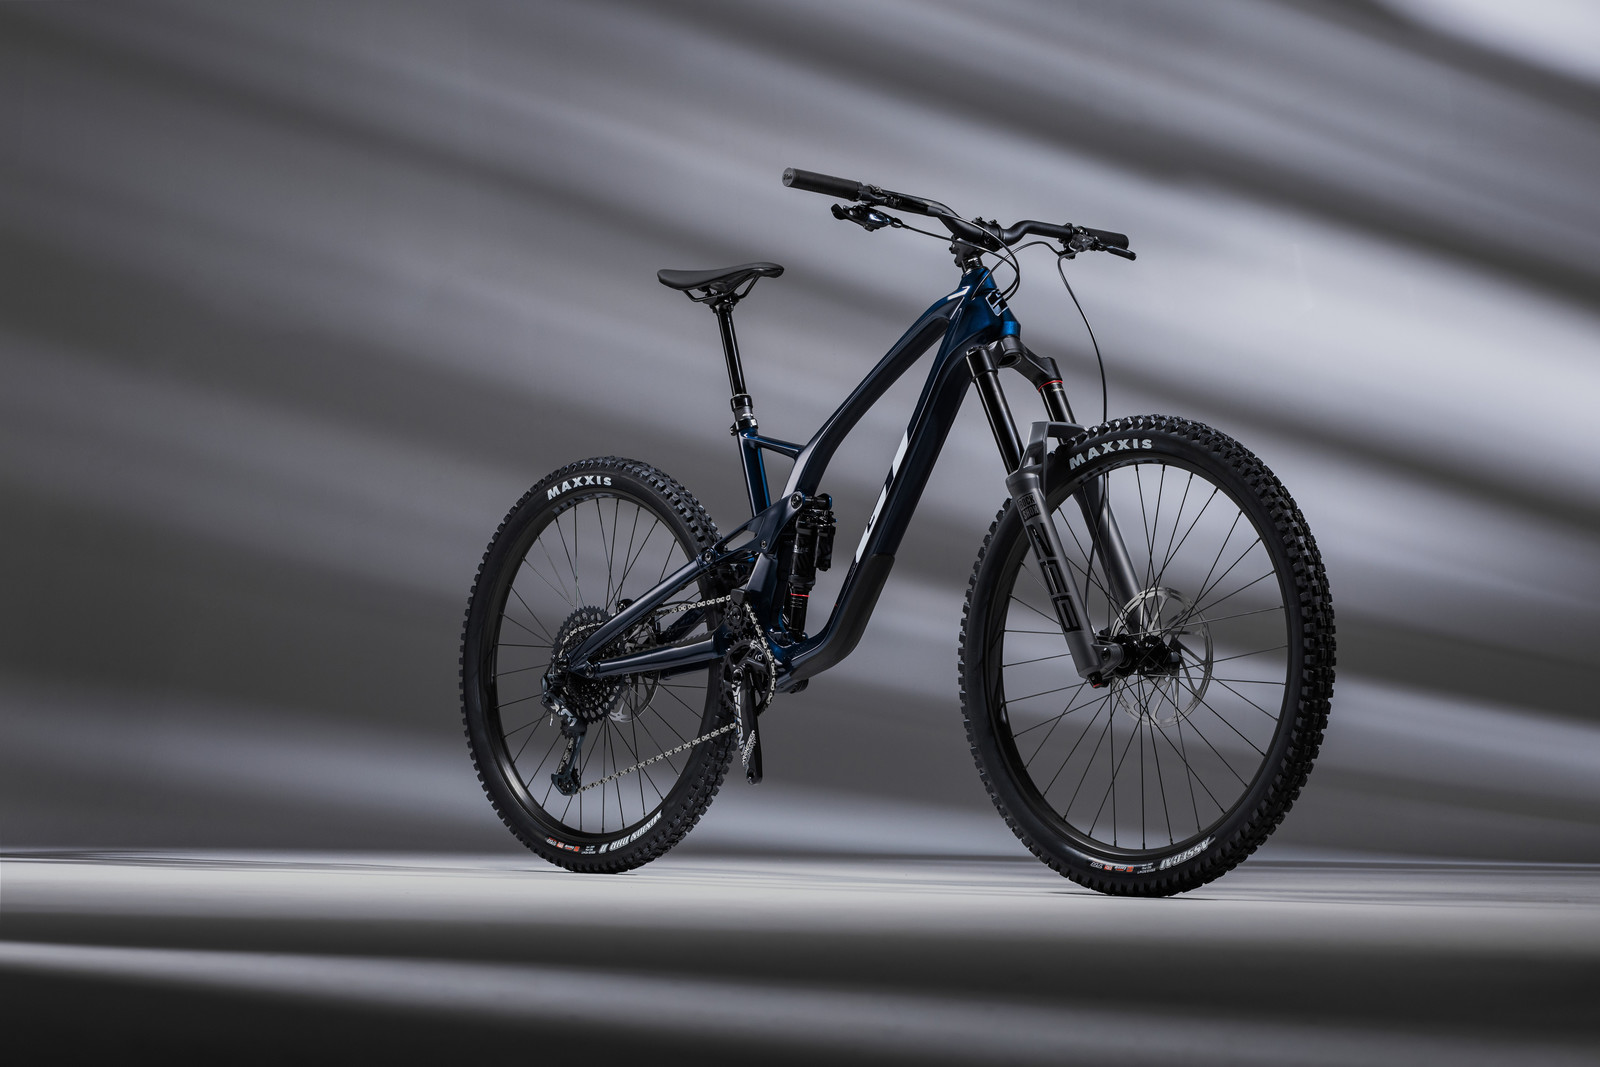 GT Launches All-New 2022 Force Carbon Enduro Machine